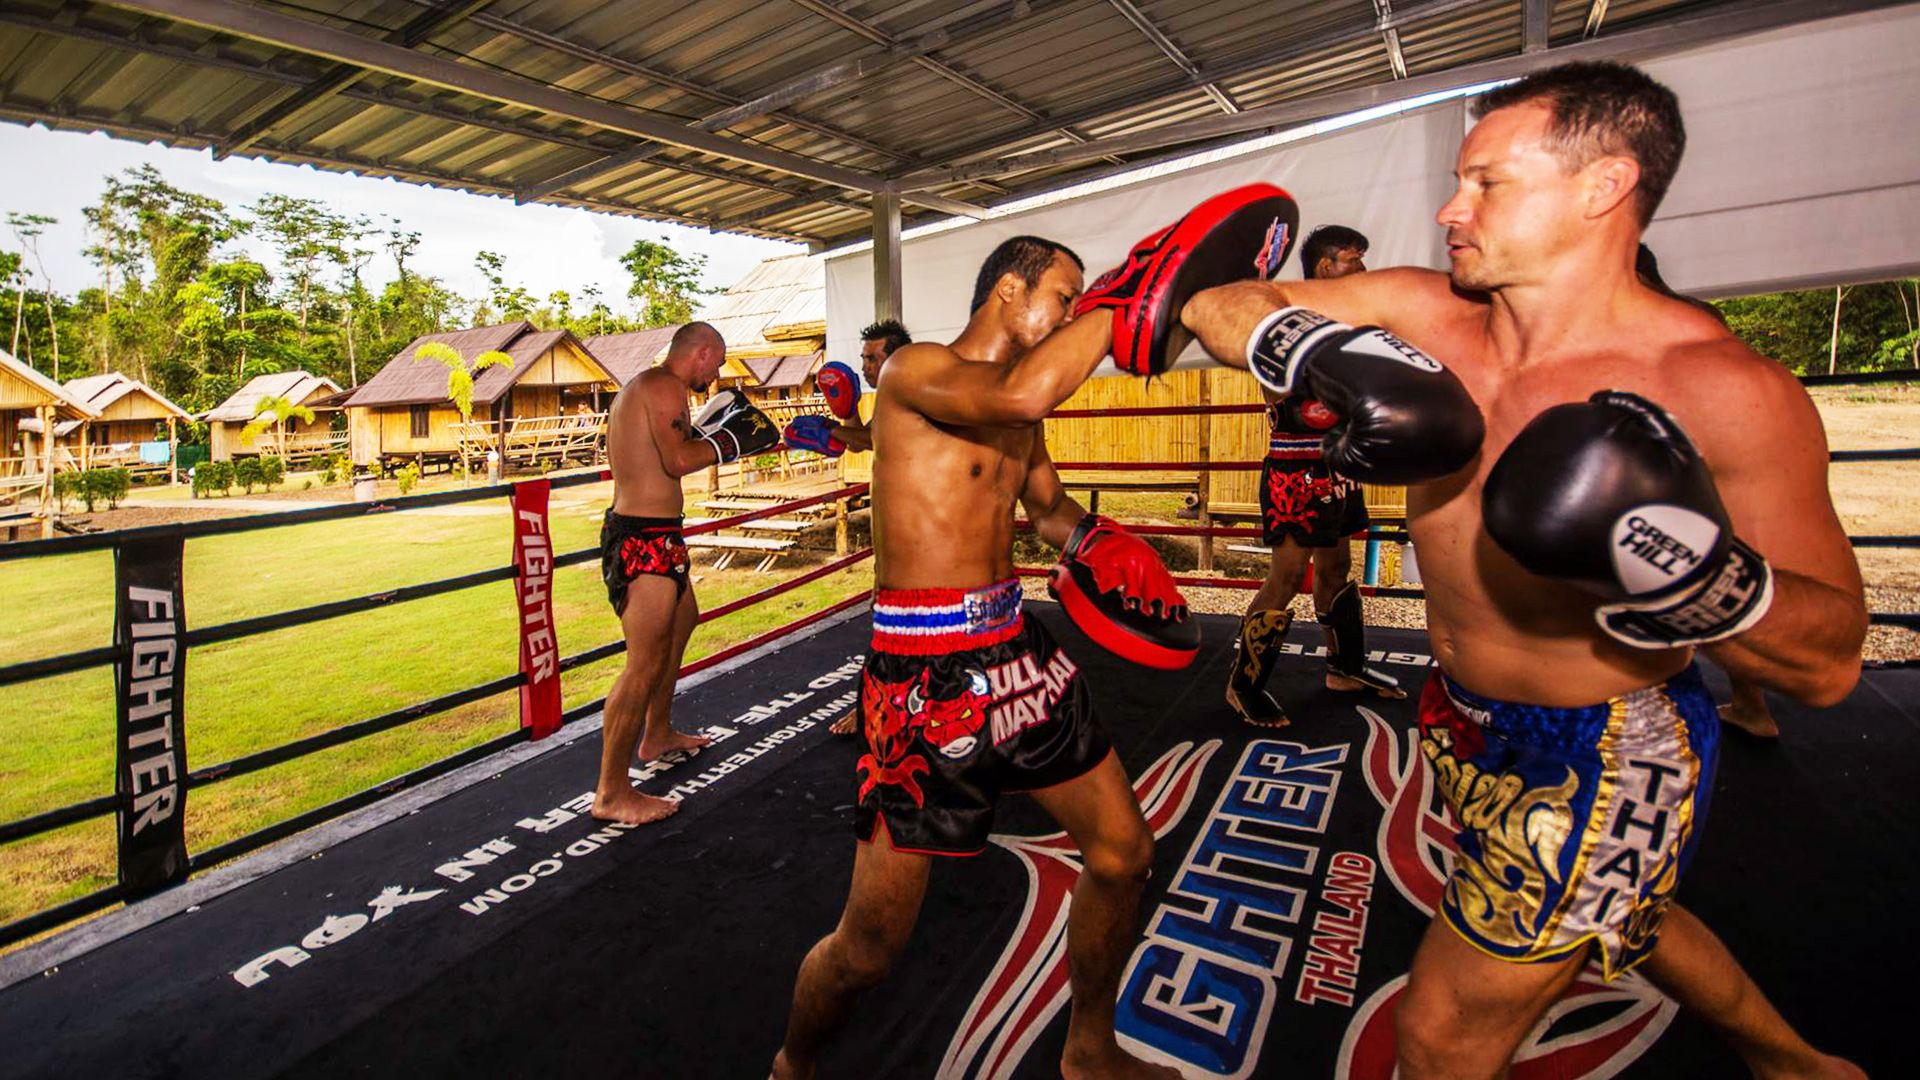 Good Health in Phuket at Gym of Muay Thai Boxing is a Perfect Choice